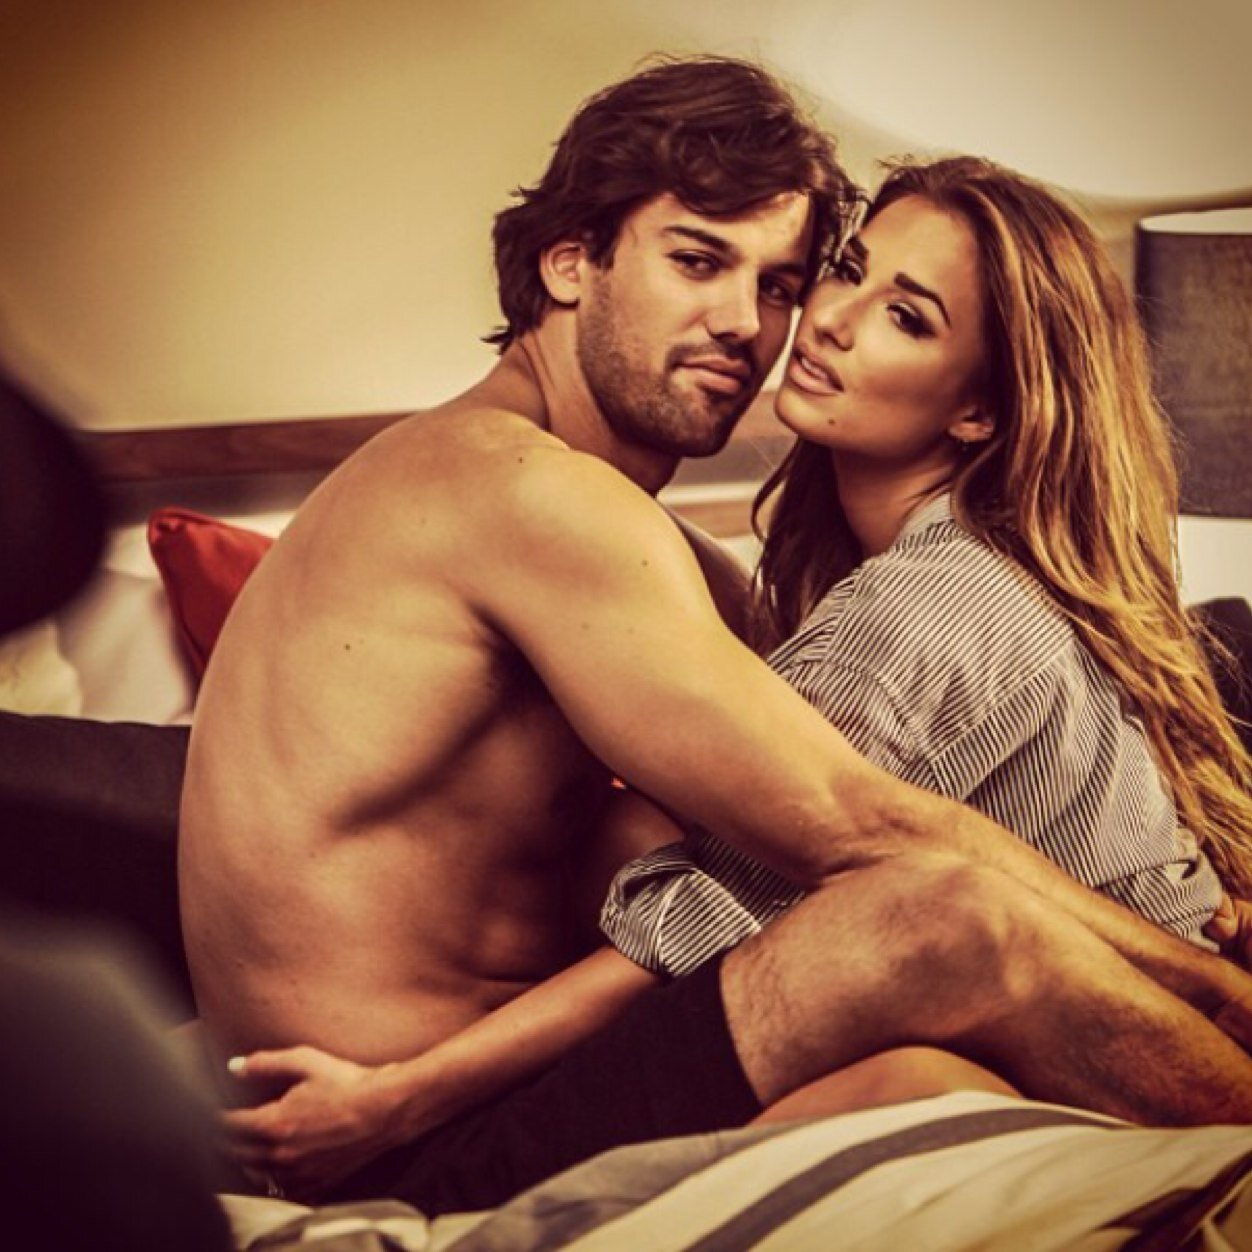 Jessie James Decker Wouldn t Care If Her Naked Selfies Surfaced Online